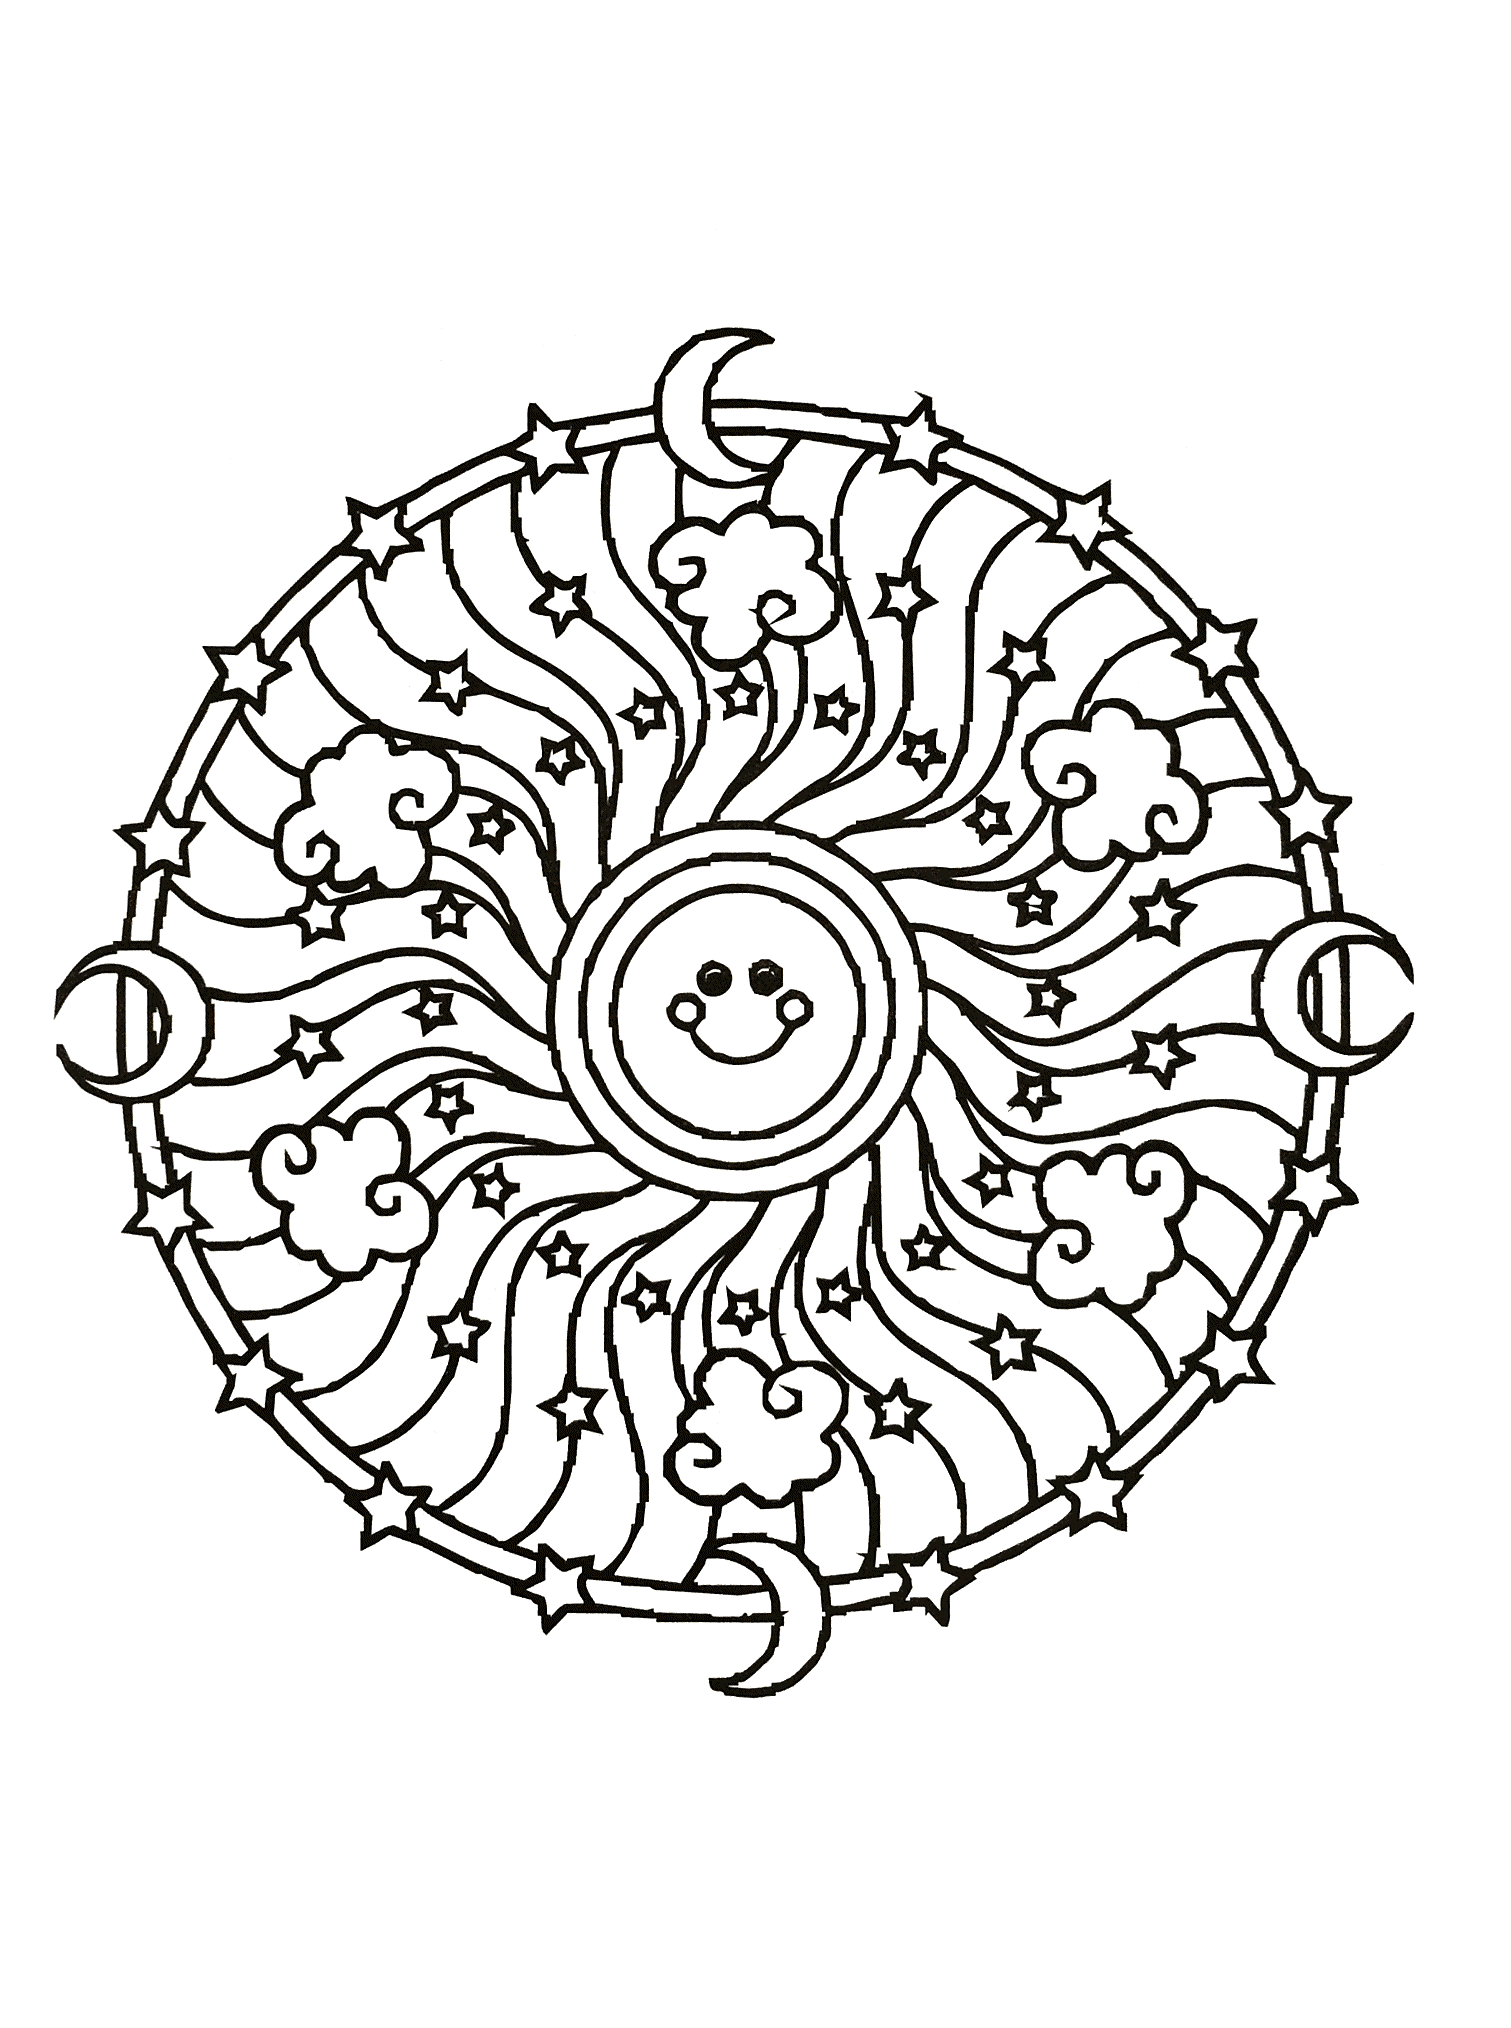 A Mandala guaranteed 100% Zen, for a moment of pure relaxation. You will quickly feel the benefits of coloring. Do whatever it takes to get rid of any distractions that may interfere with your coloring.